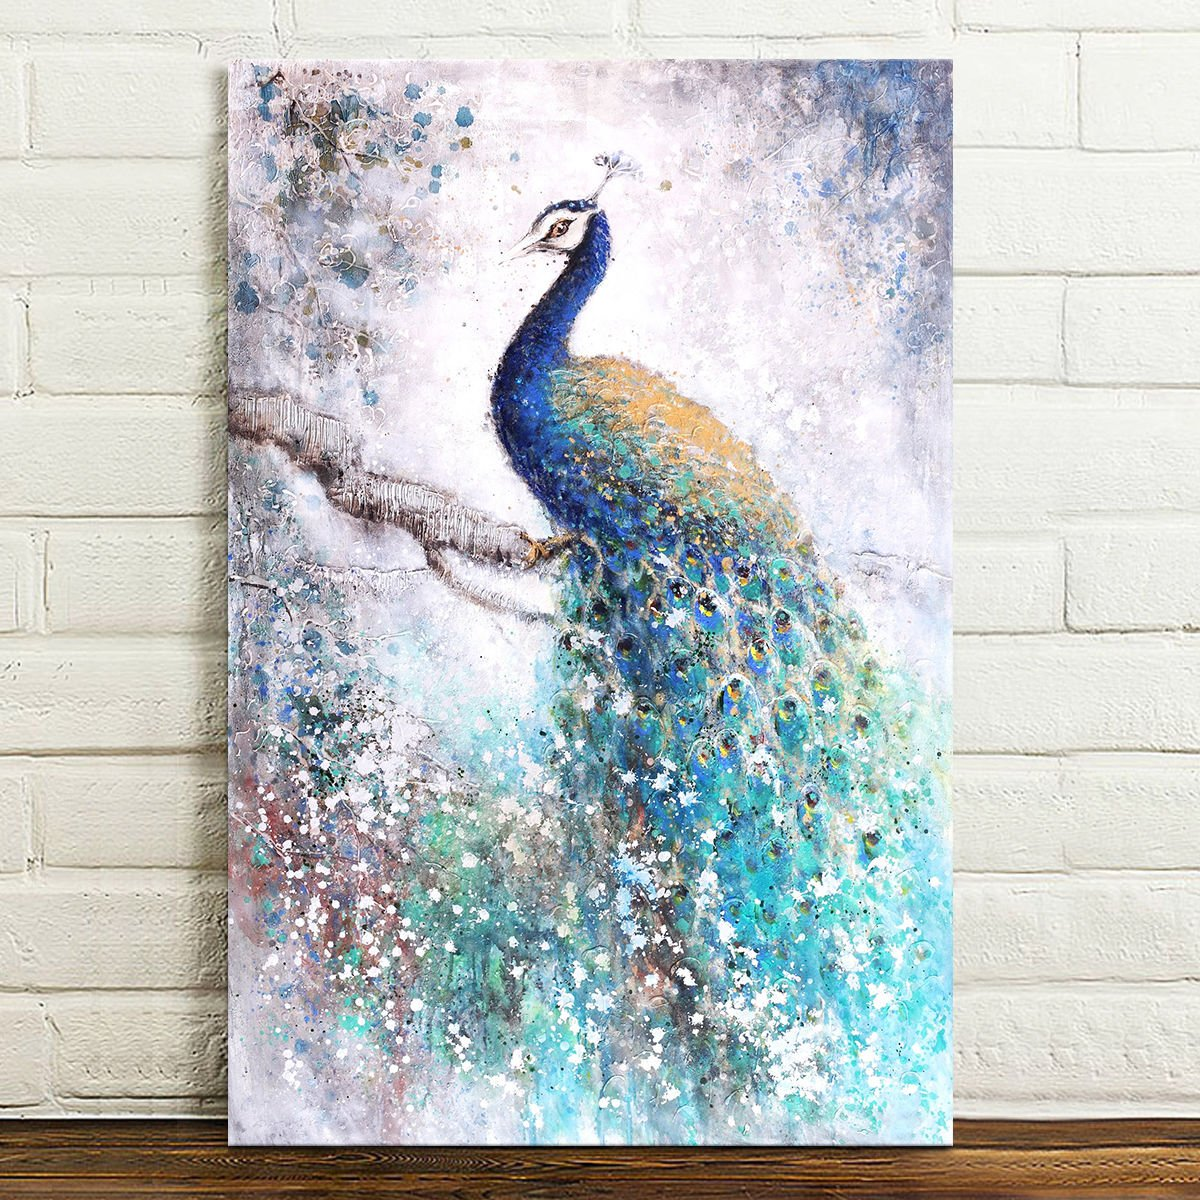 Hd Canvas Prints Home Wall Art Painting Picture Beautiful Peacock Unframed Decor